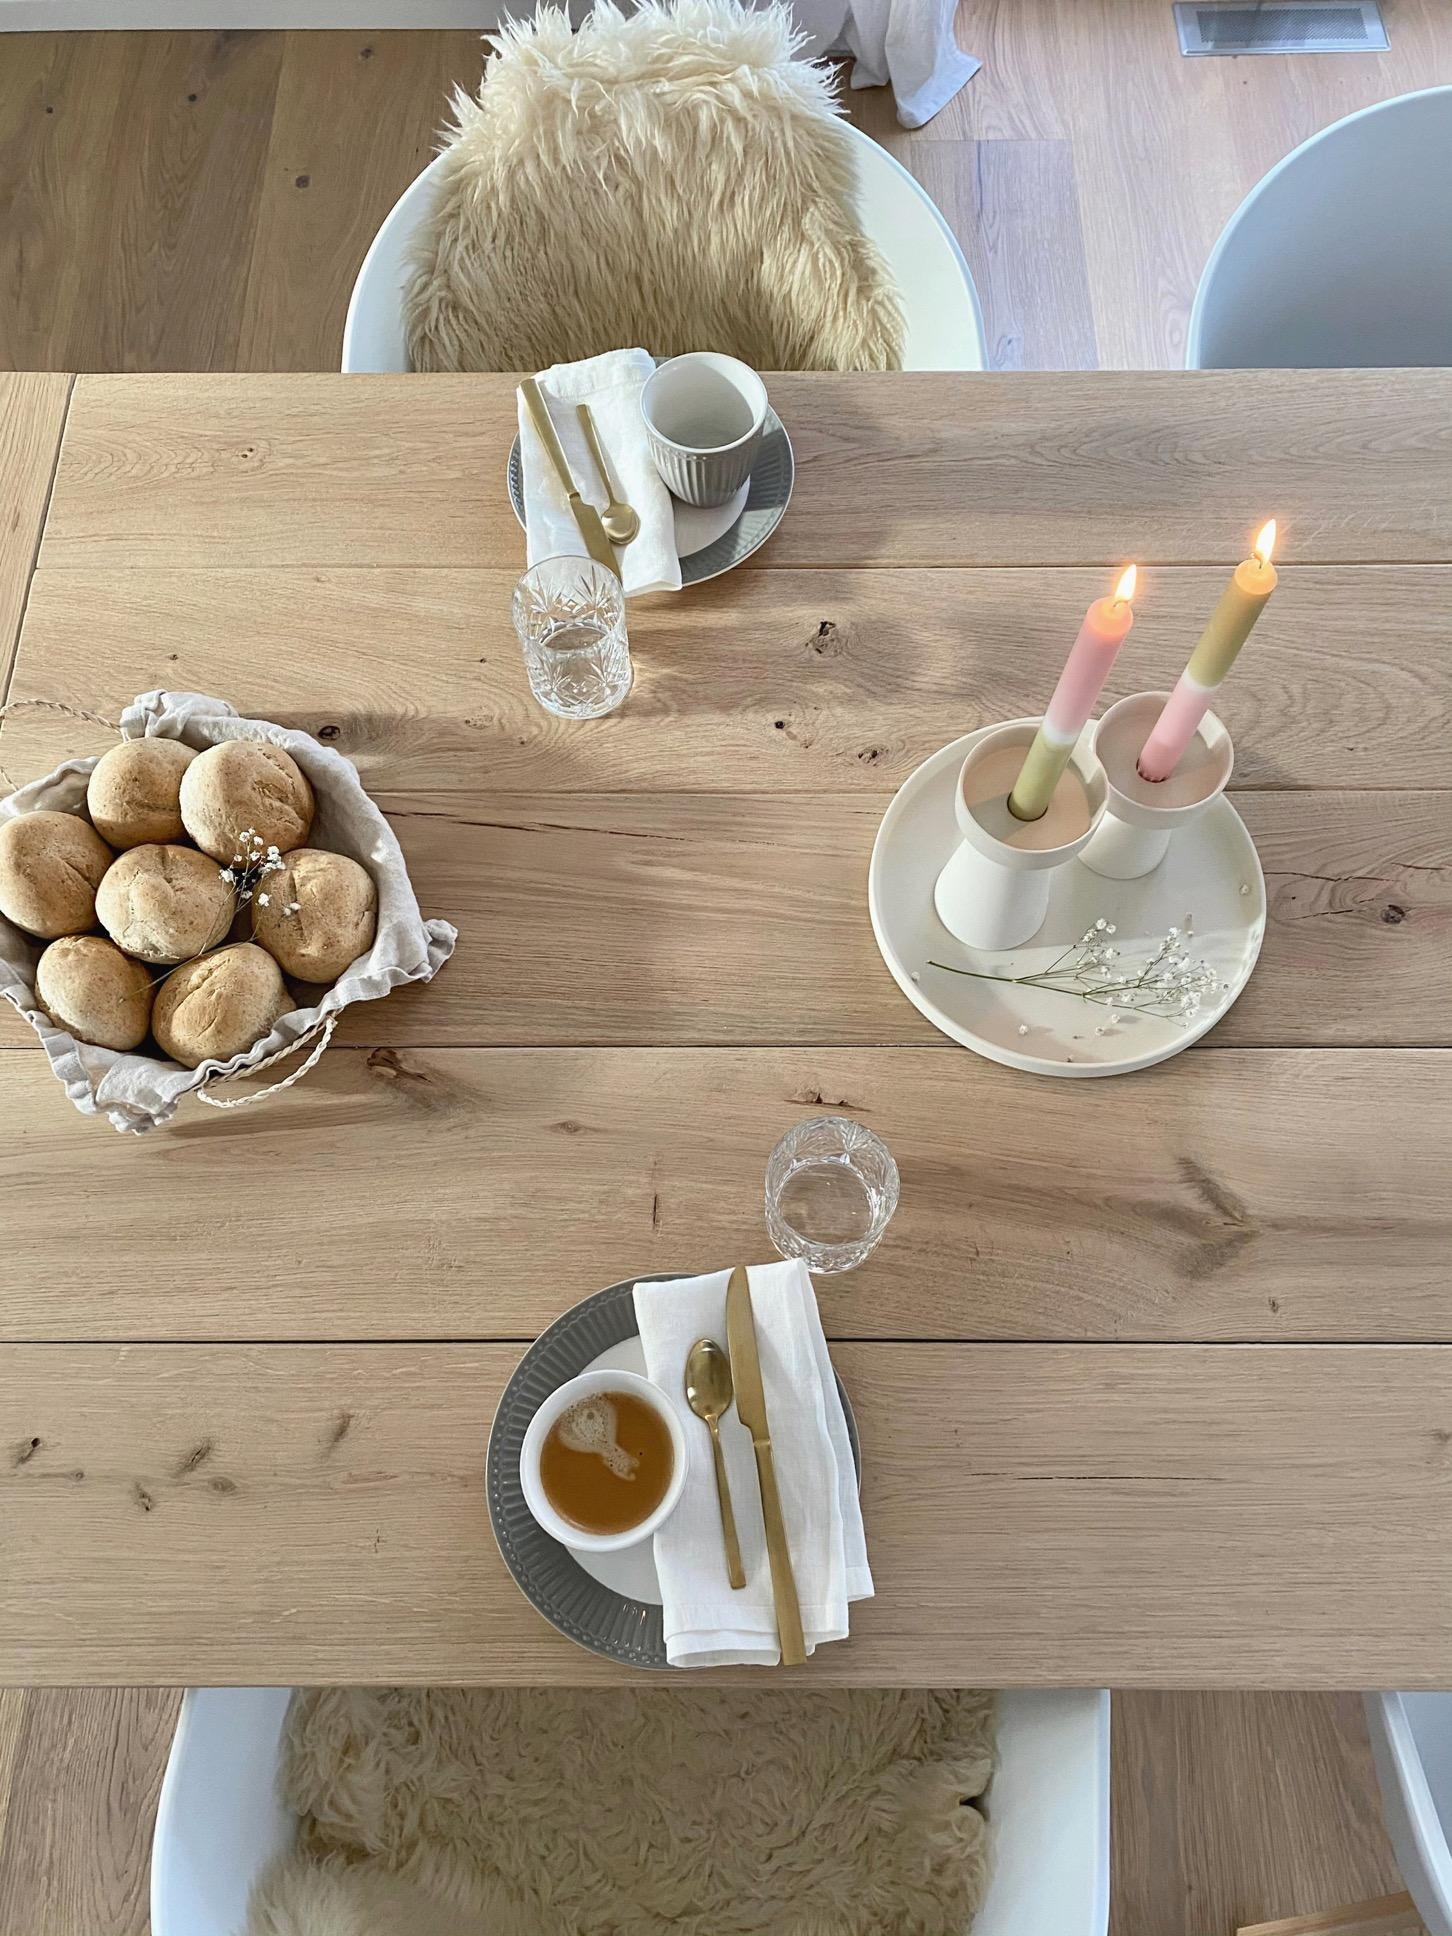 Table situation on Sunday ?